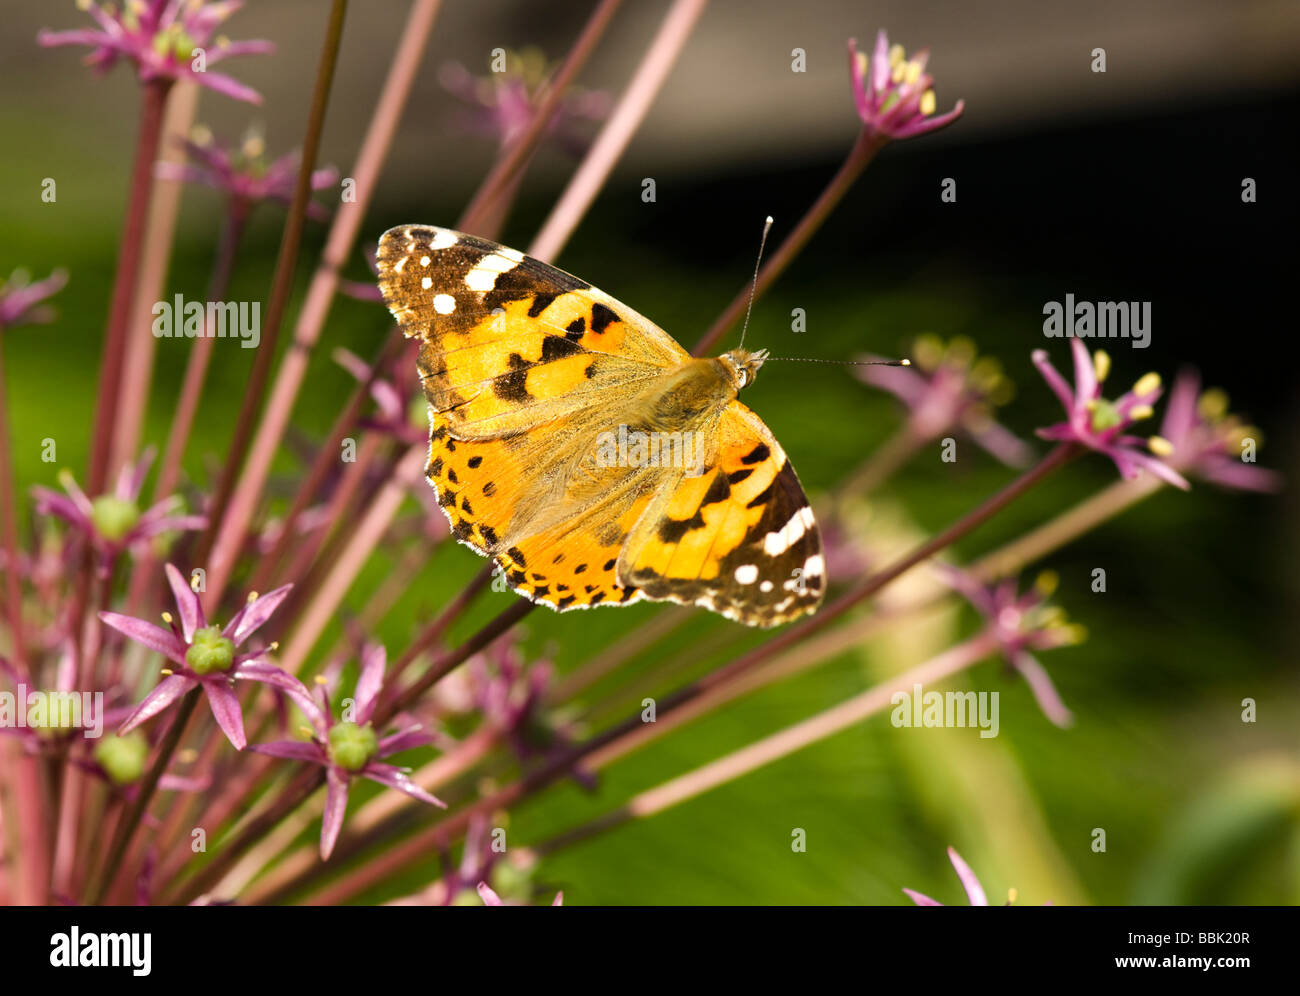 painted-lady-butterfly-surrey-uk-BBK20R.